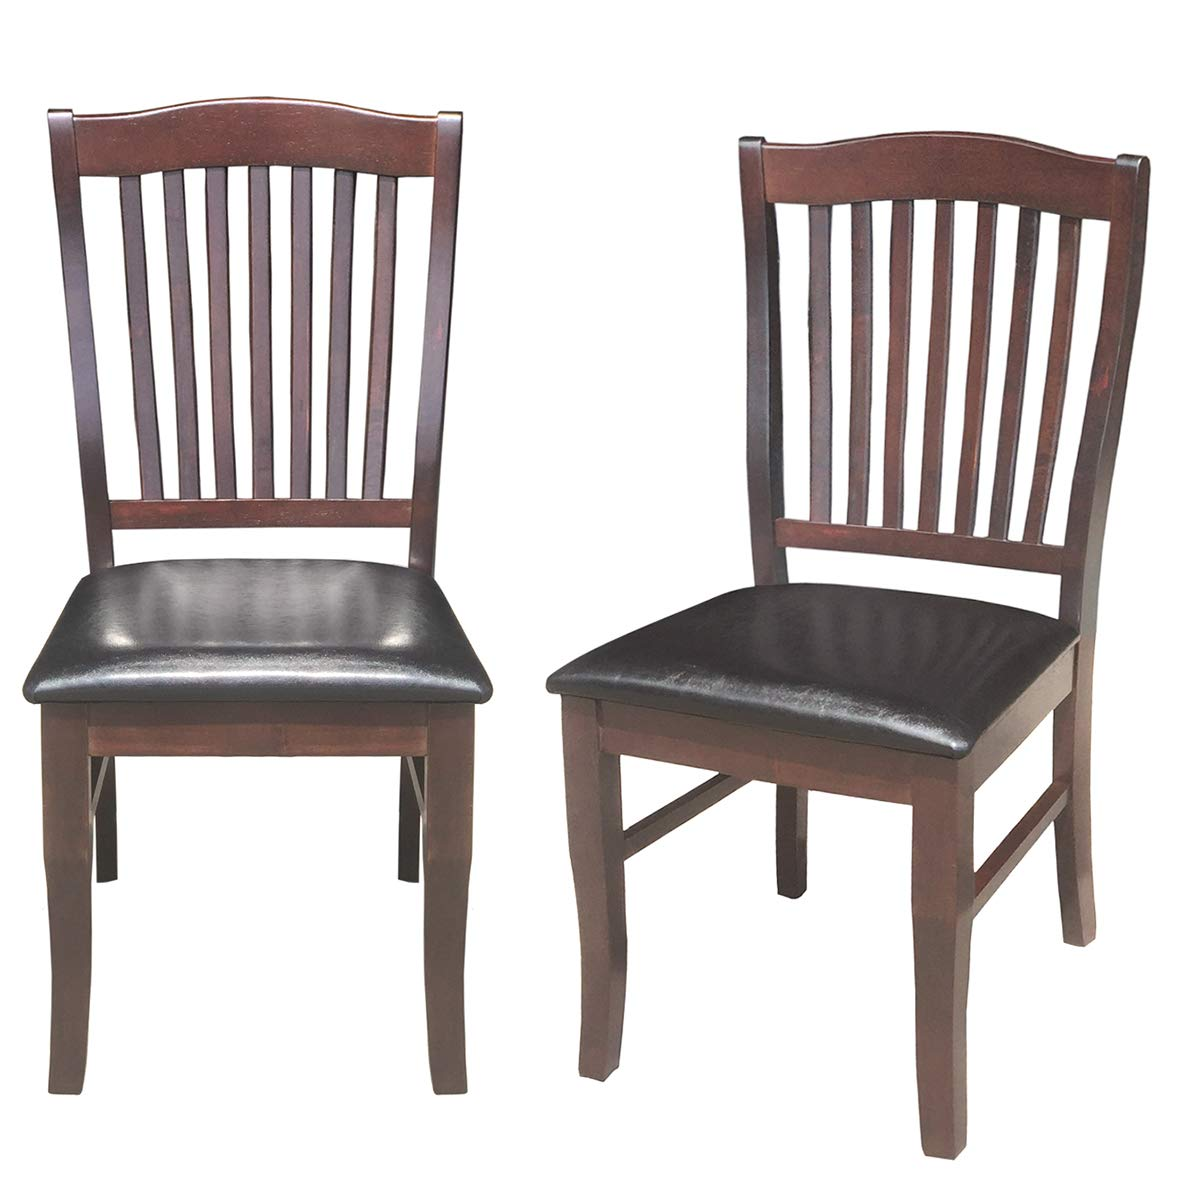 Giantex Set Of 2 Dining Chairs Wood Armless Chair Home Kitchen Room High Back W PU Leather Padded Seat 175x21x40WxDxH Dark Brown